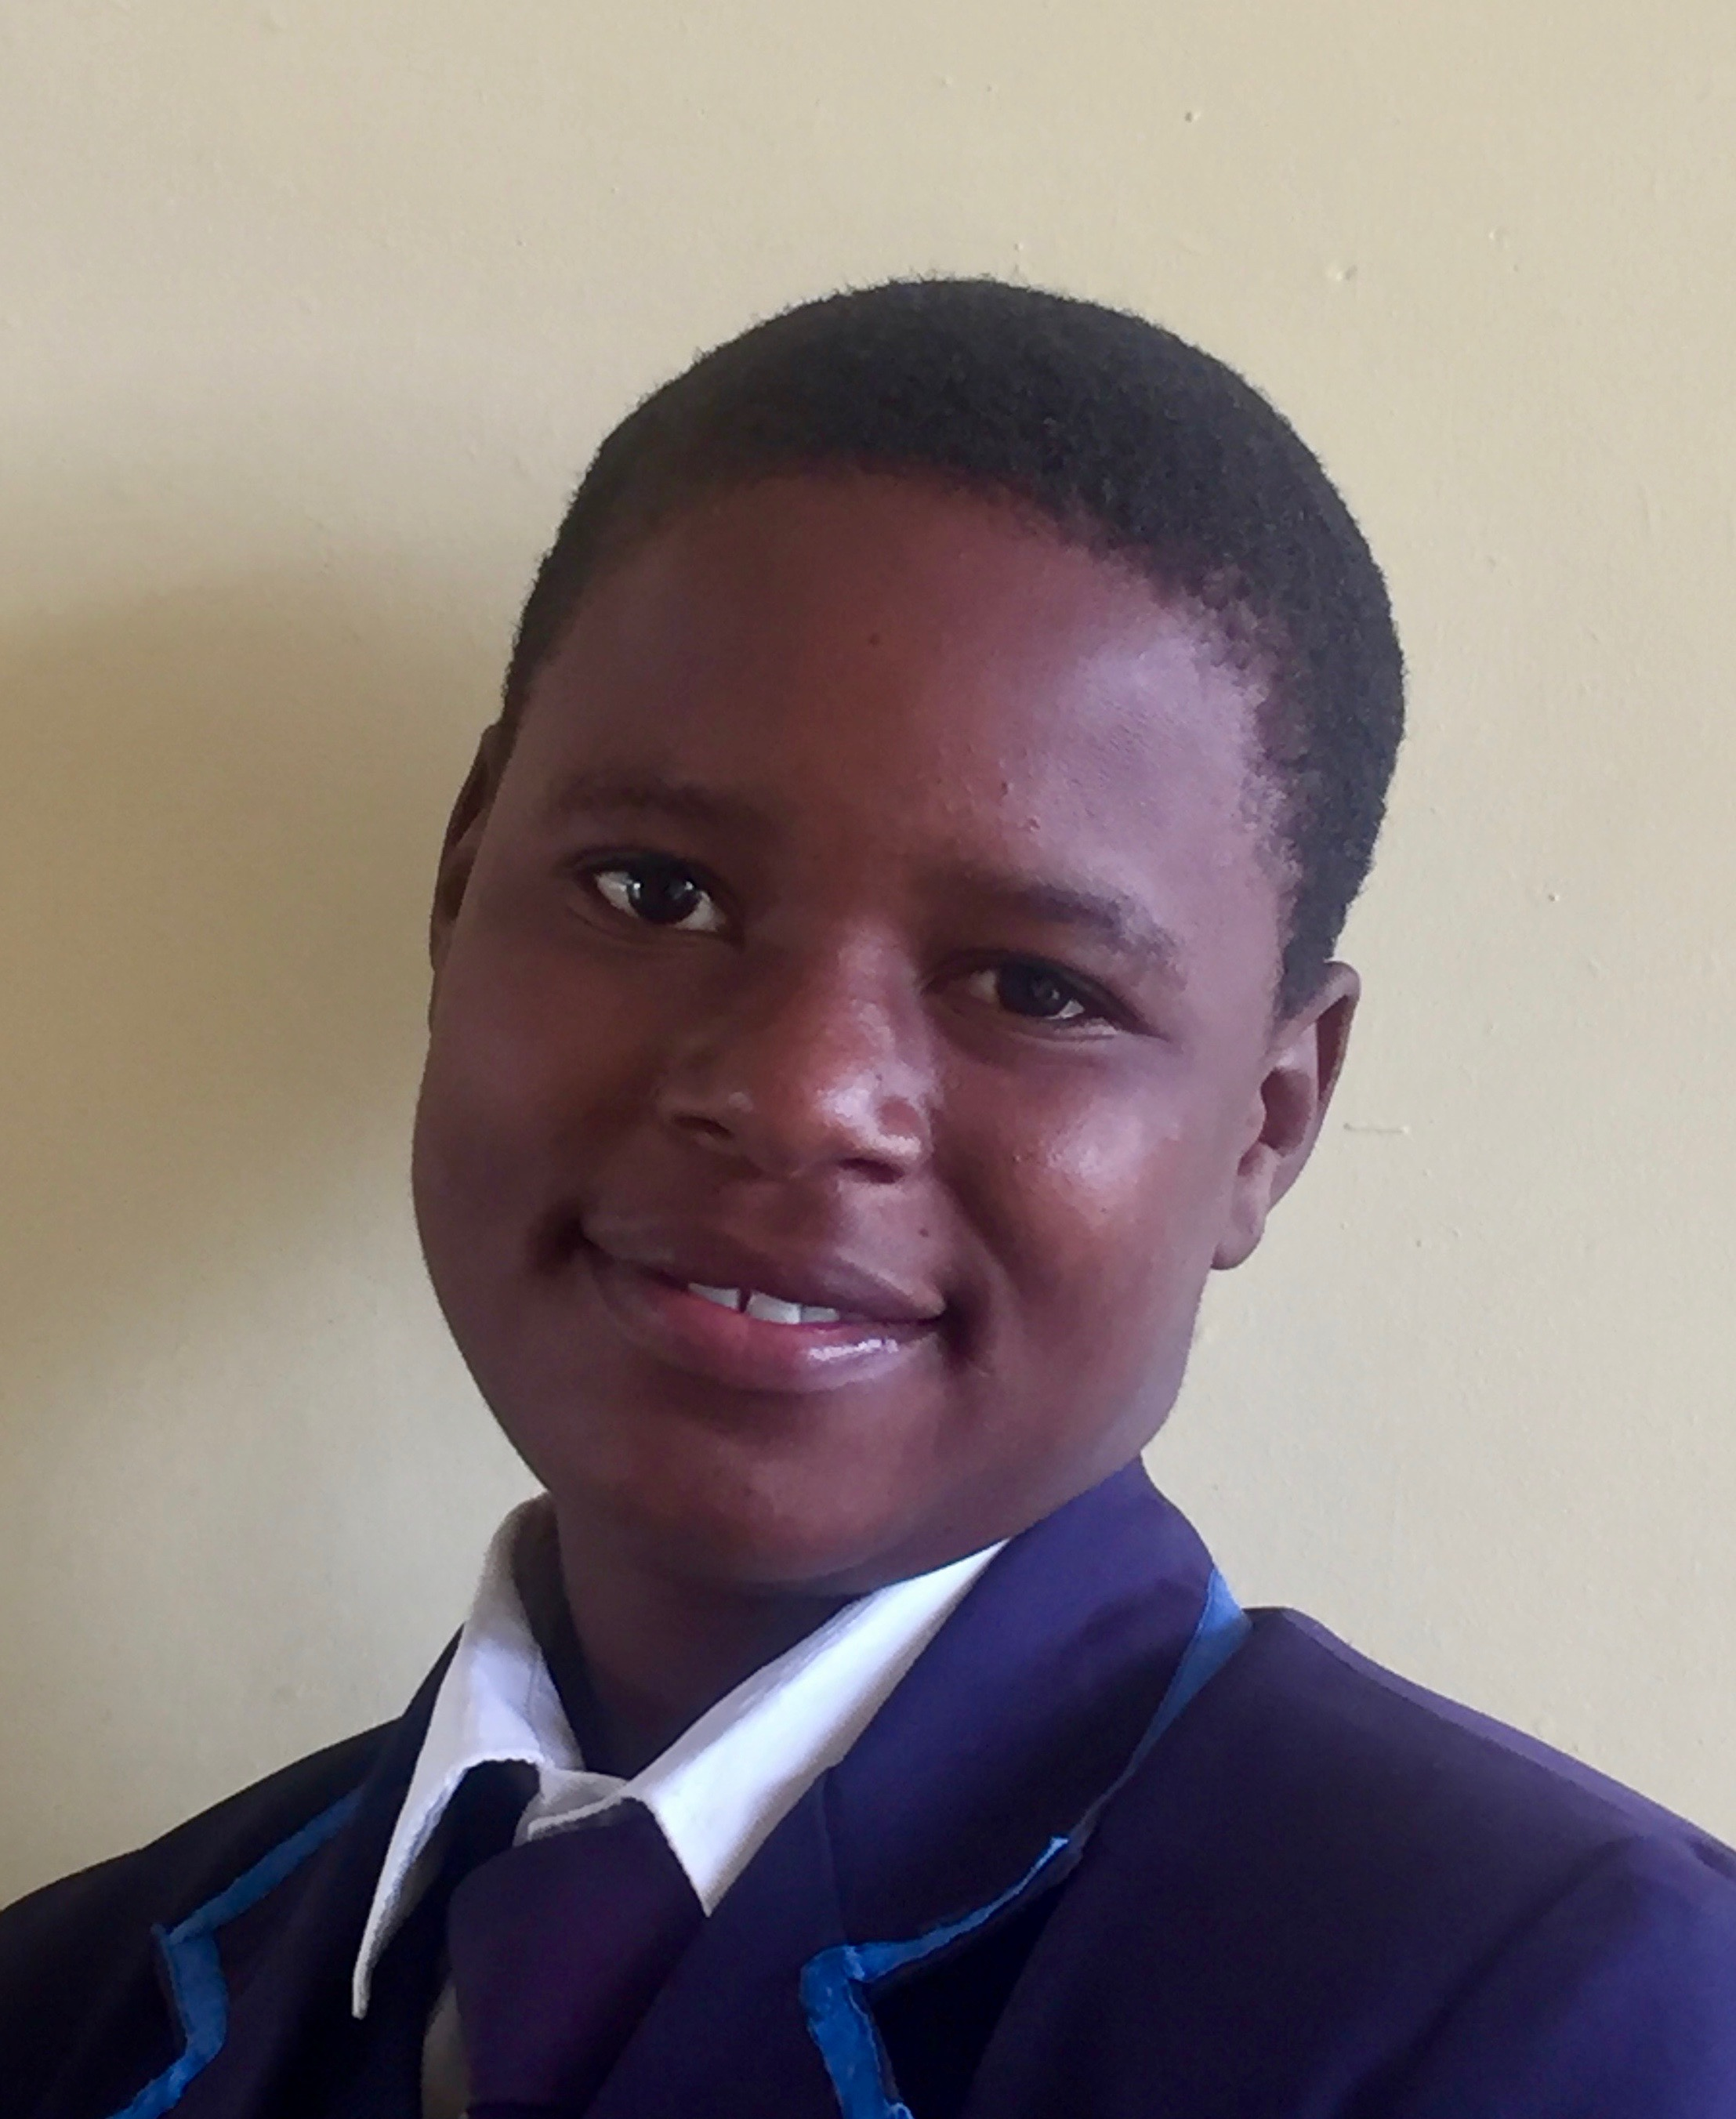 Petronella Chikwati   Petronella has always been extremely smart and enthusiastic about school. After both her parents died, she and her two younger siblings moved in with an elderly grandmother, and with Zienzele support Petronella has continued to excel at school. She struggled with math for a time, but with the tutoring of her fellow Zienzele students she is now doing much better. Currently Petronella is completing her final year at Berejena College Secondary School and hopes to attend National University of Science and Technology as a business major in the fall.